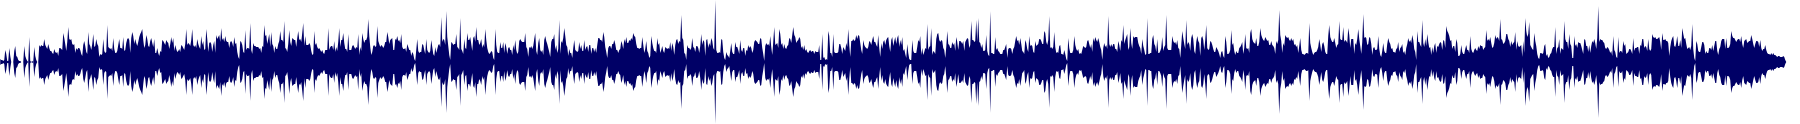 waveform of track #67896